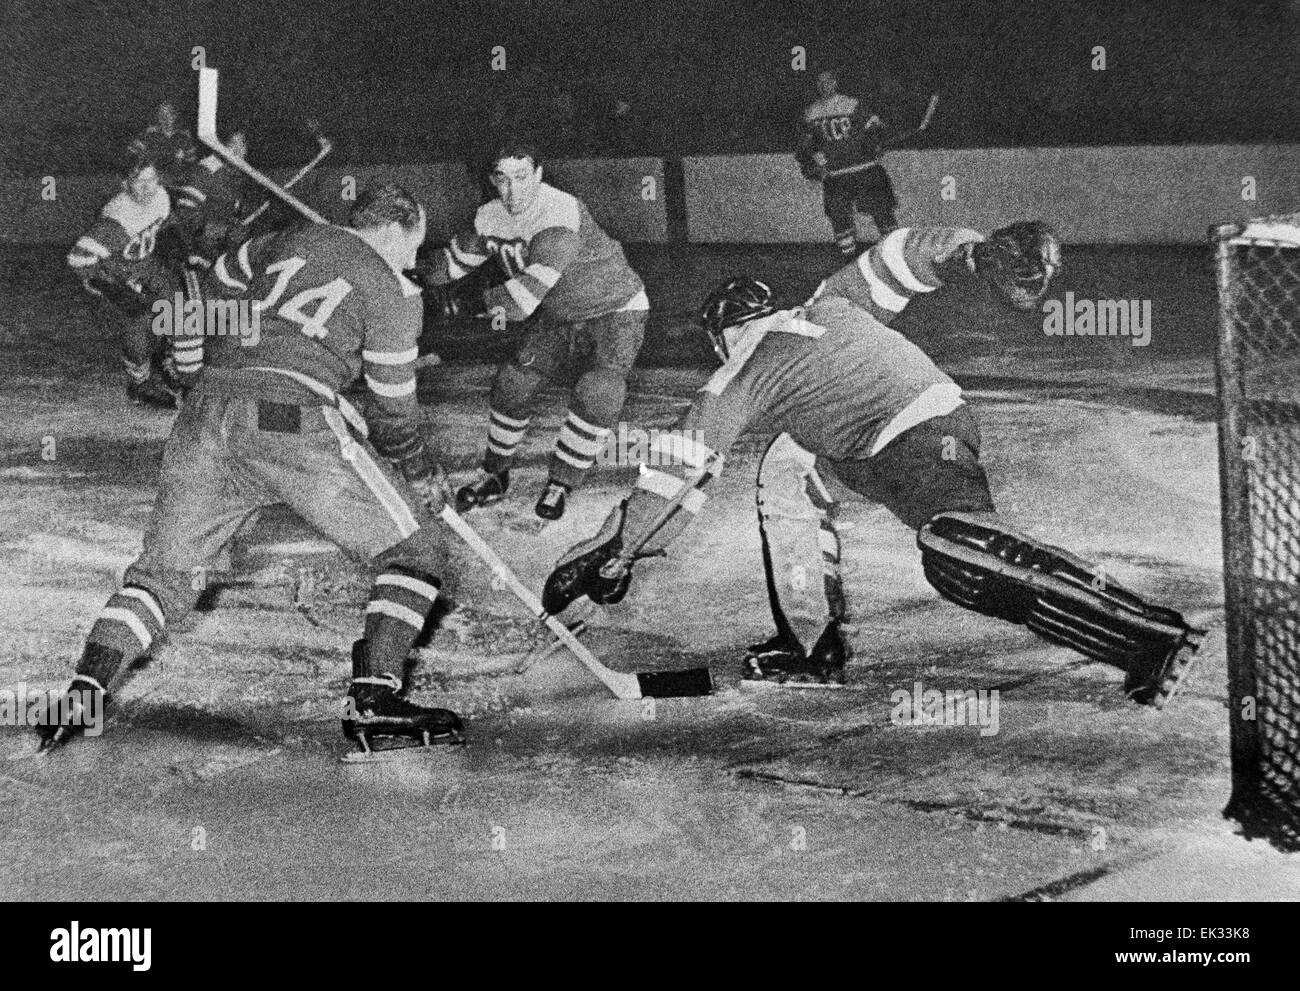 Stockholm. Sweden. The 21st World Ice-hockey championship. The match between the USSR and Sweden ended with 1:1. - Stock Image